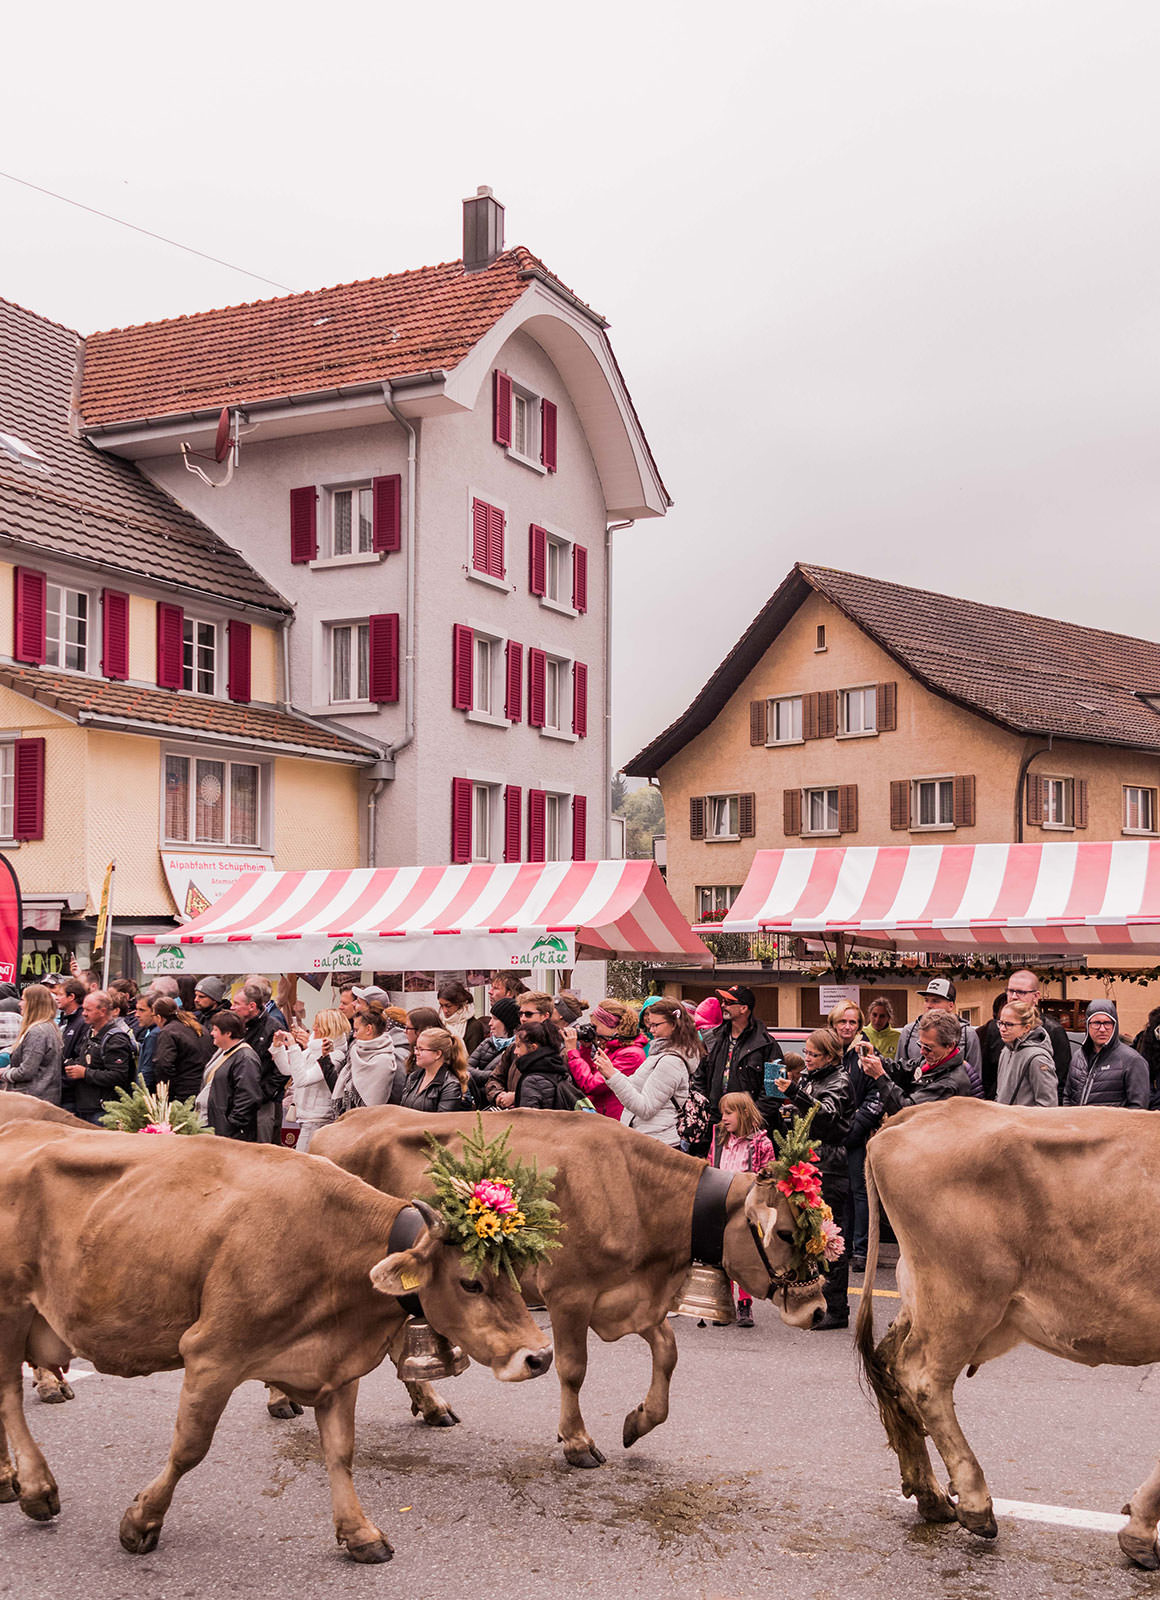 A trip to Entlebuch - Alpine Cattle Descent